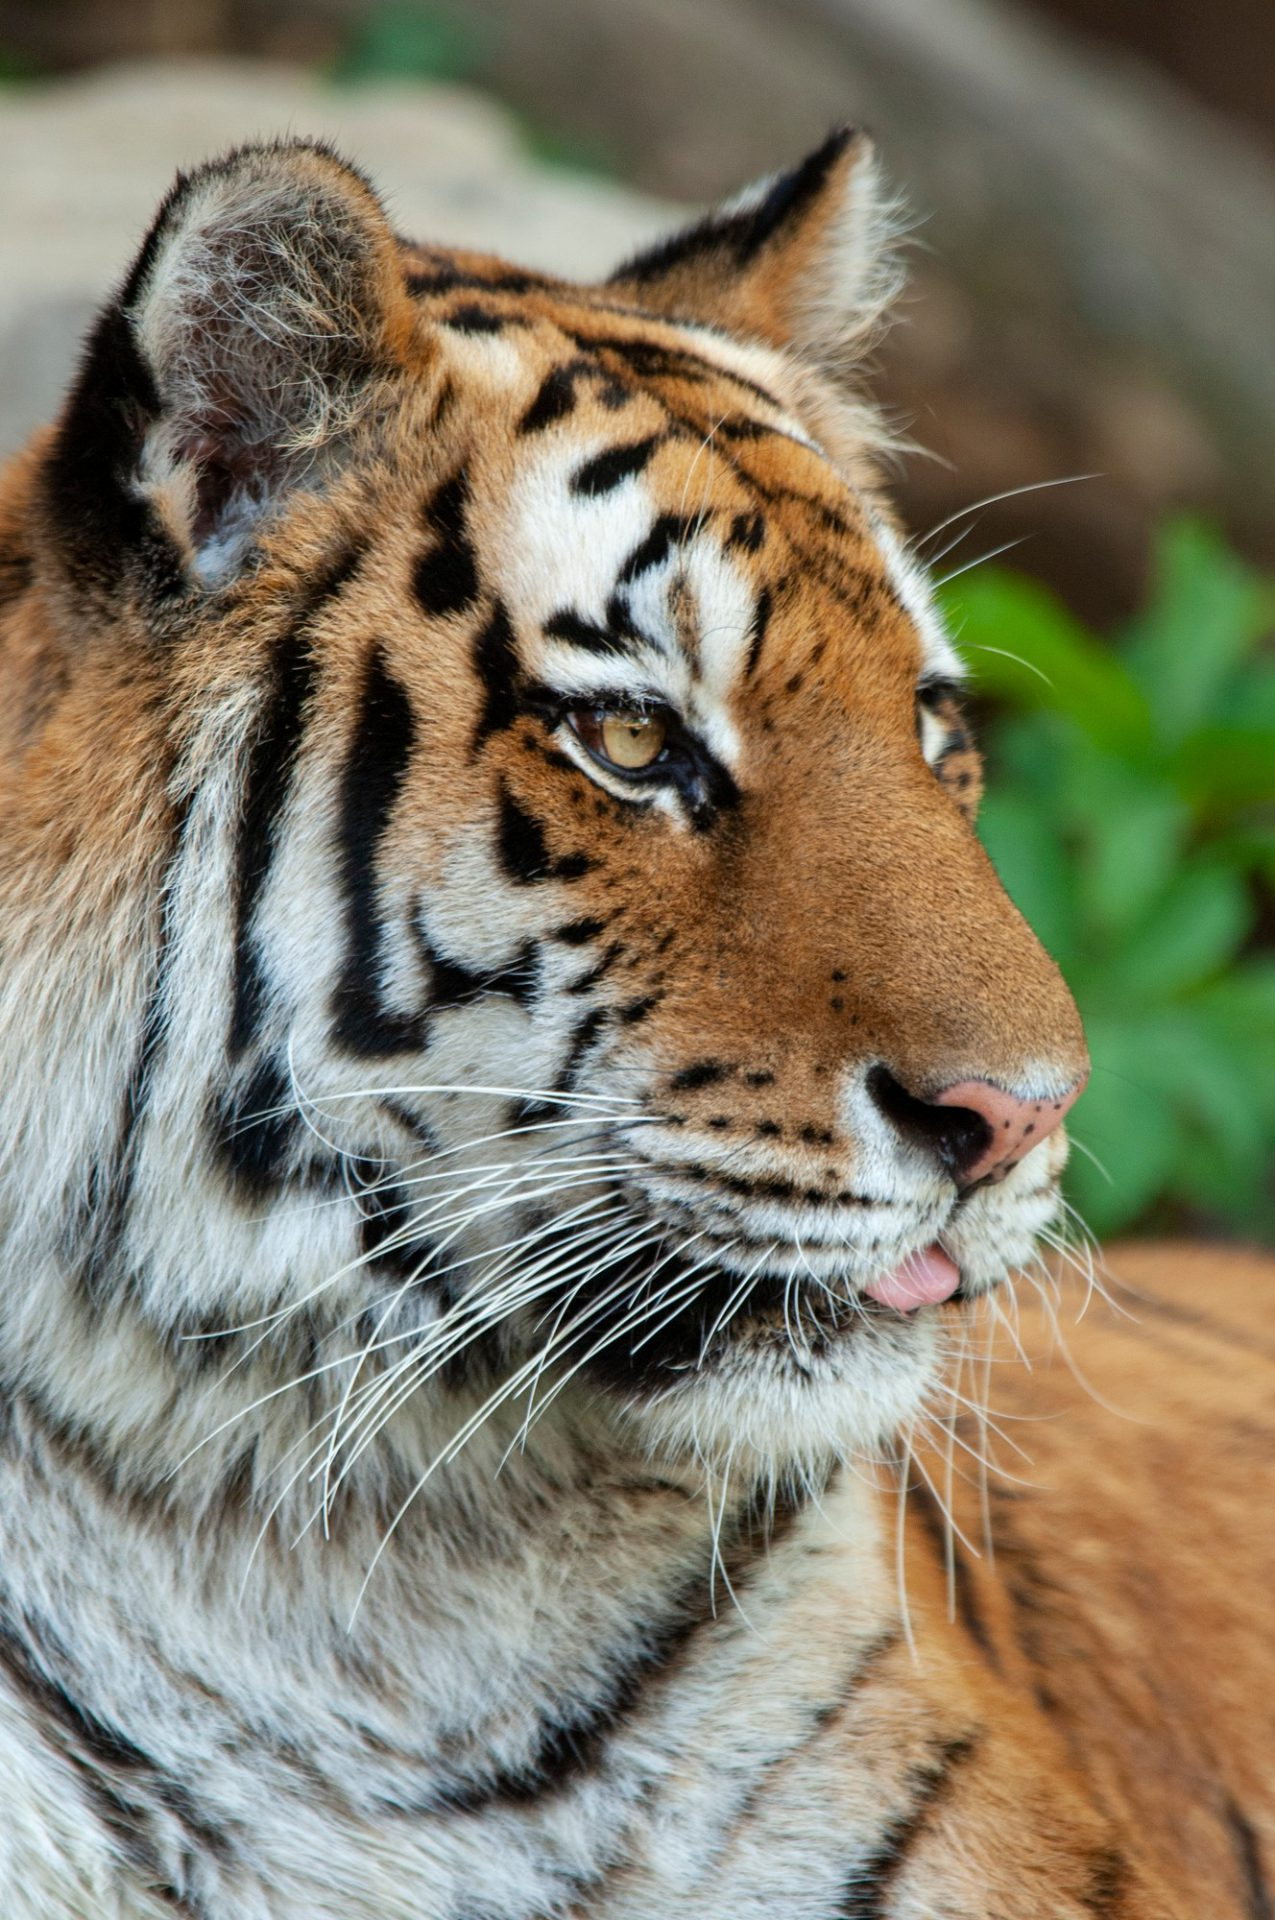 Photo: A Siberian tiger at the Omaha Zoo.